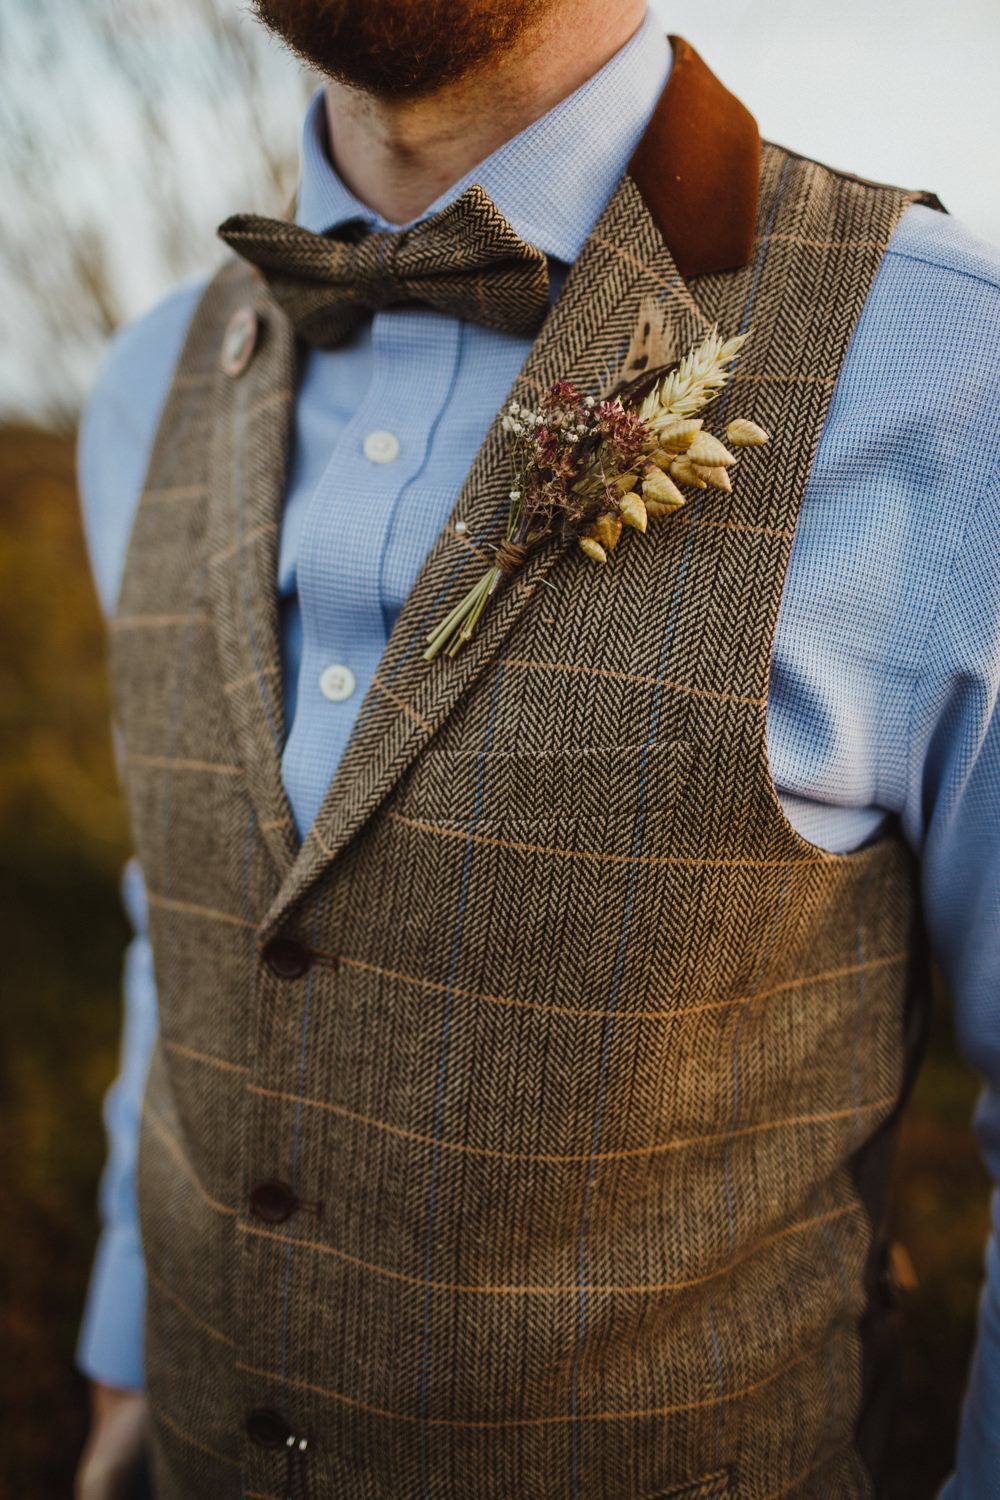 Groom Groomsmen Waistcoat Bow Tie Chinos Dried Flowers Buttonhole Wheat Train Station Harry Potter Wedding Photography34